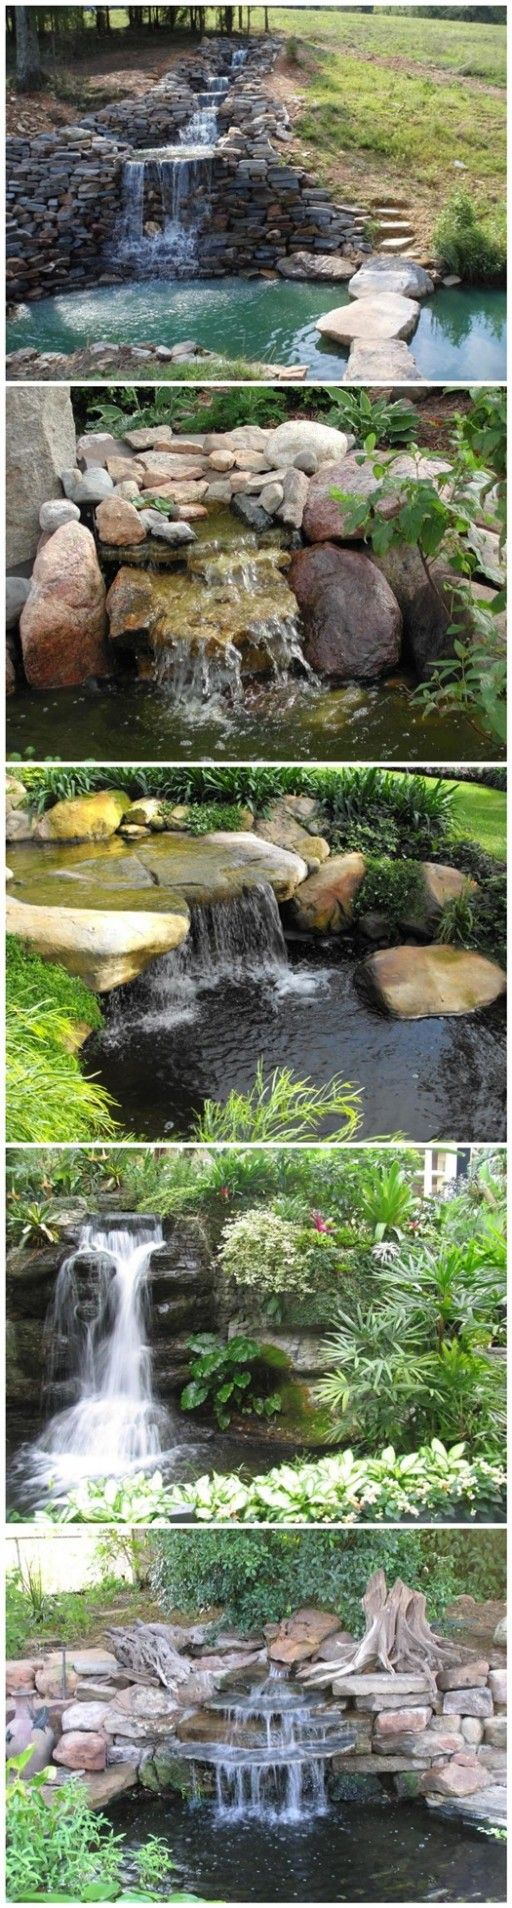 355 Best Natural Swimming Pools Images On Pinterest